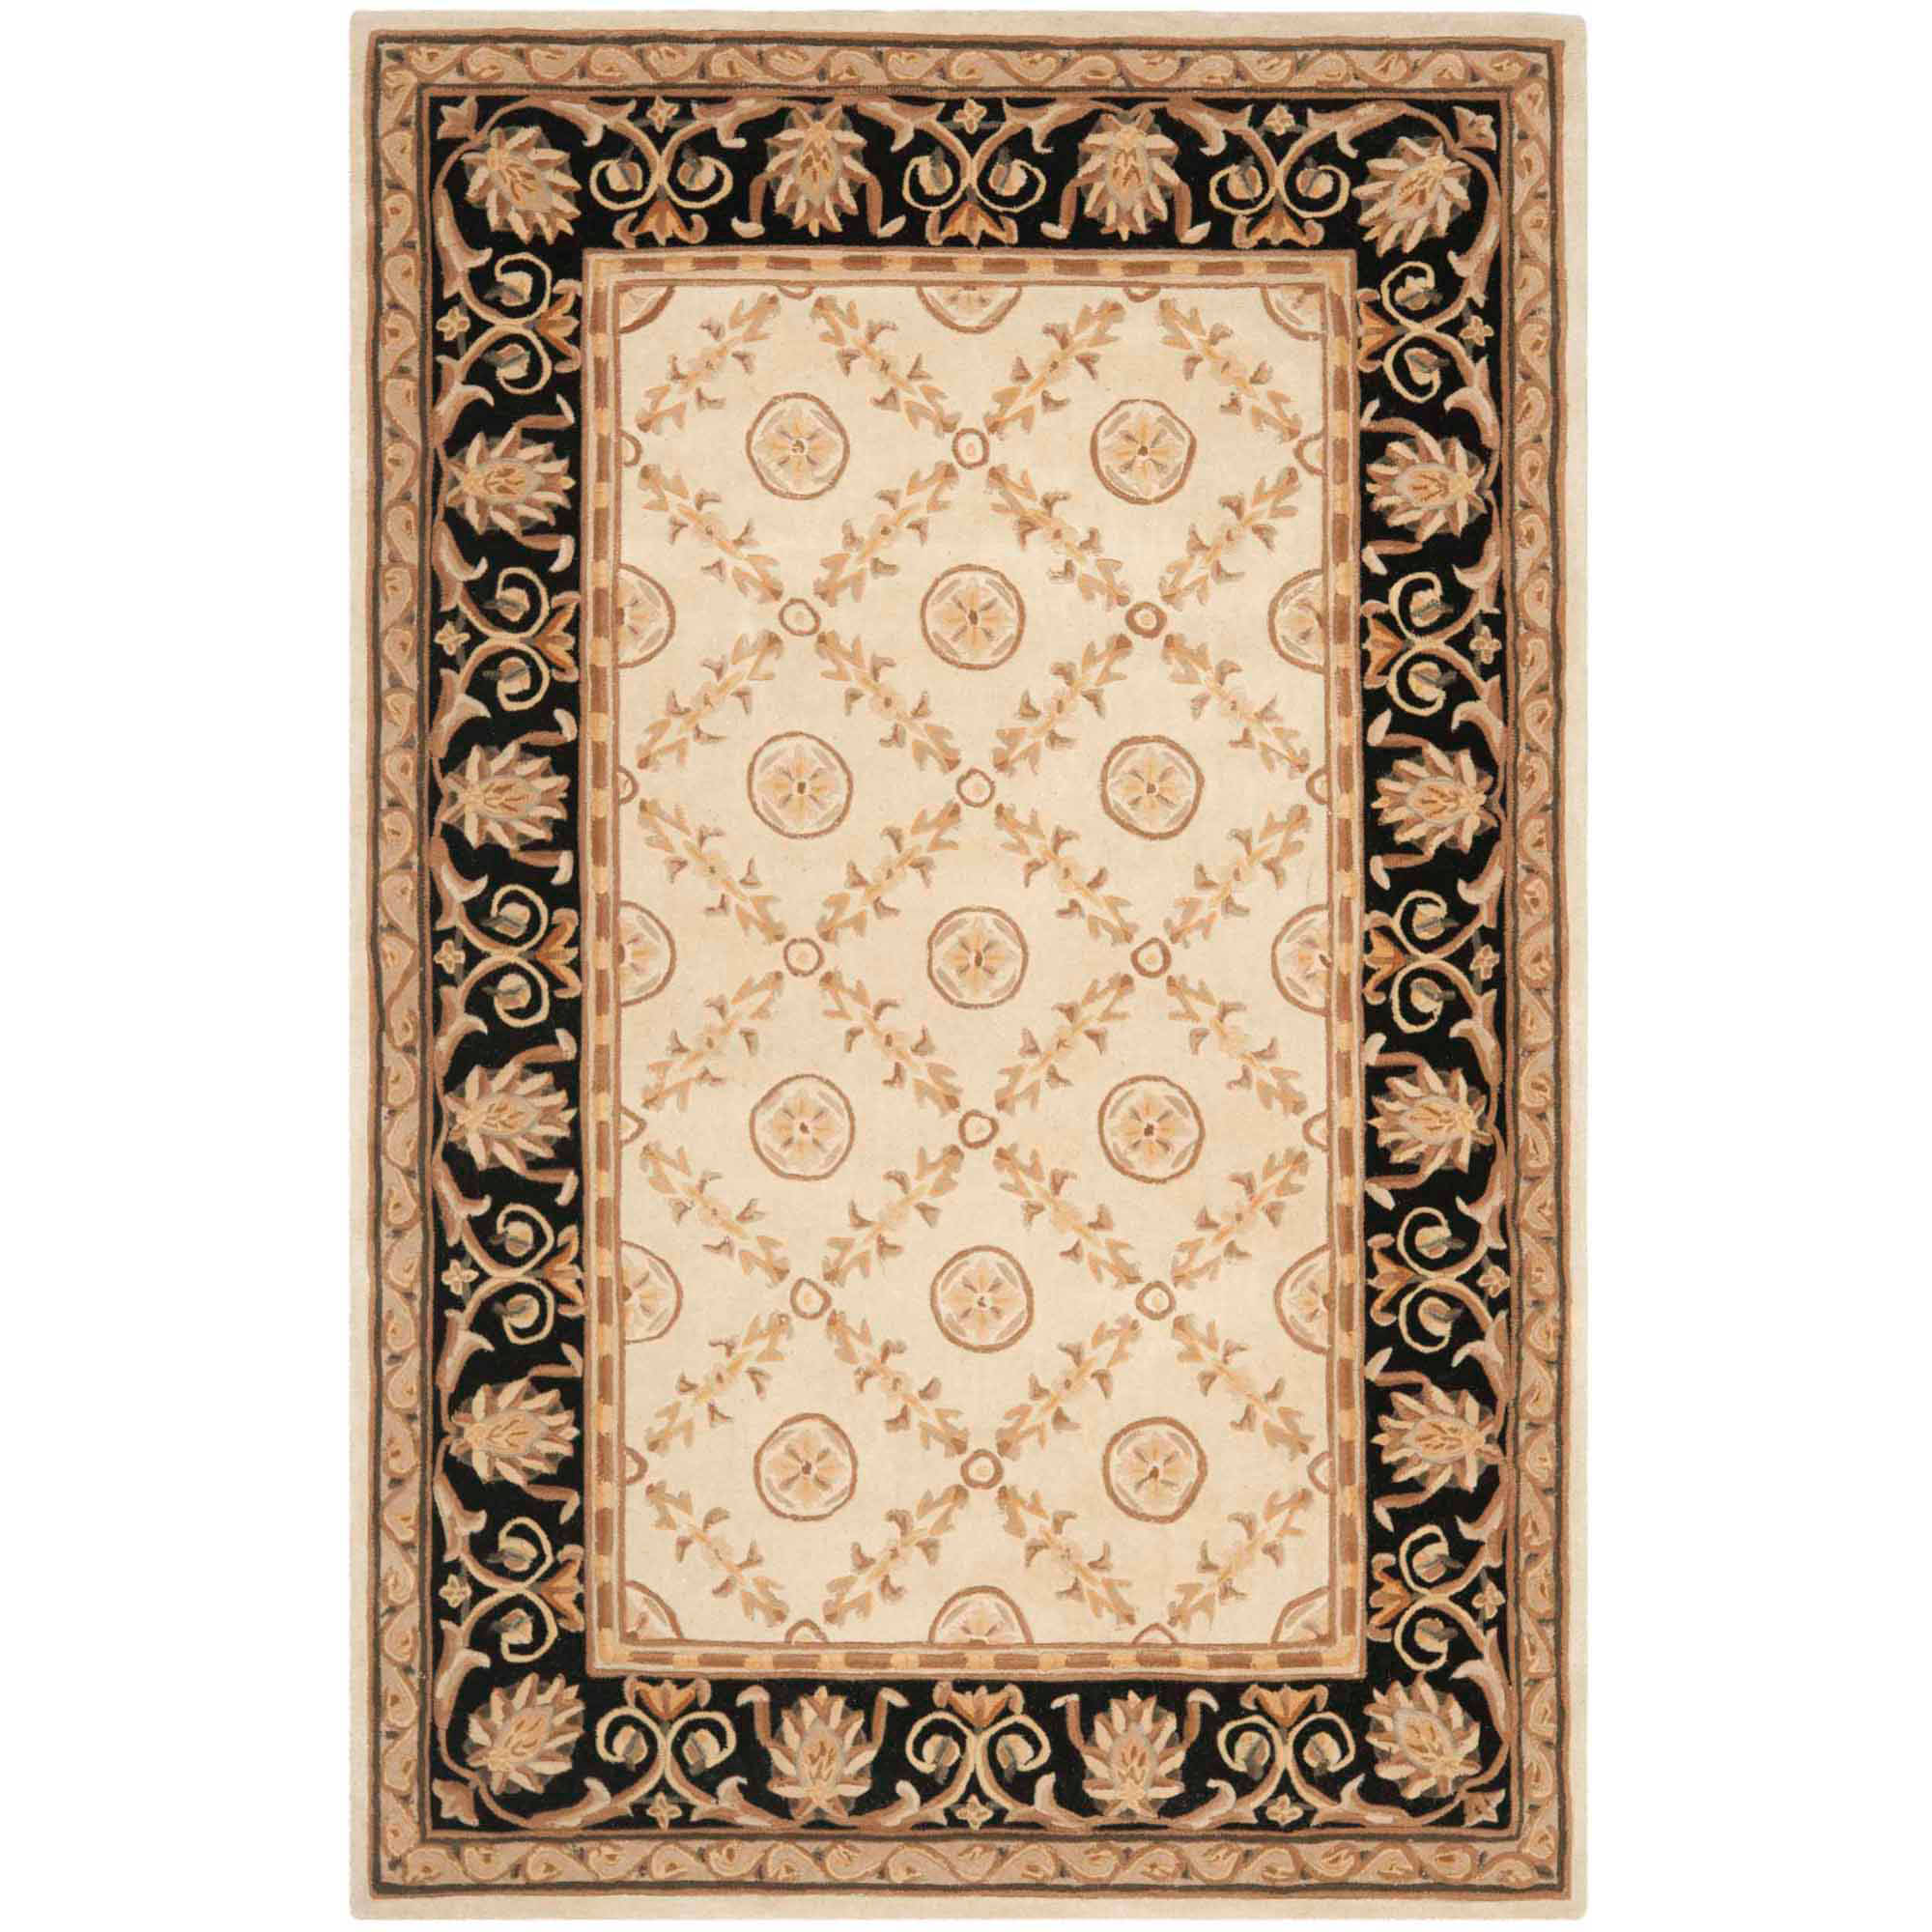 Safavieh Naples Dimas Hand-Tufted Wool Area Rug